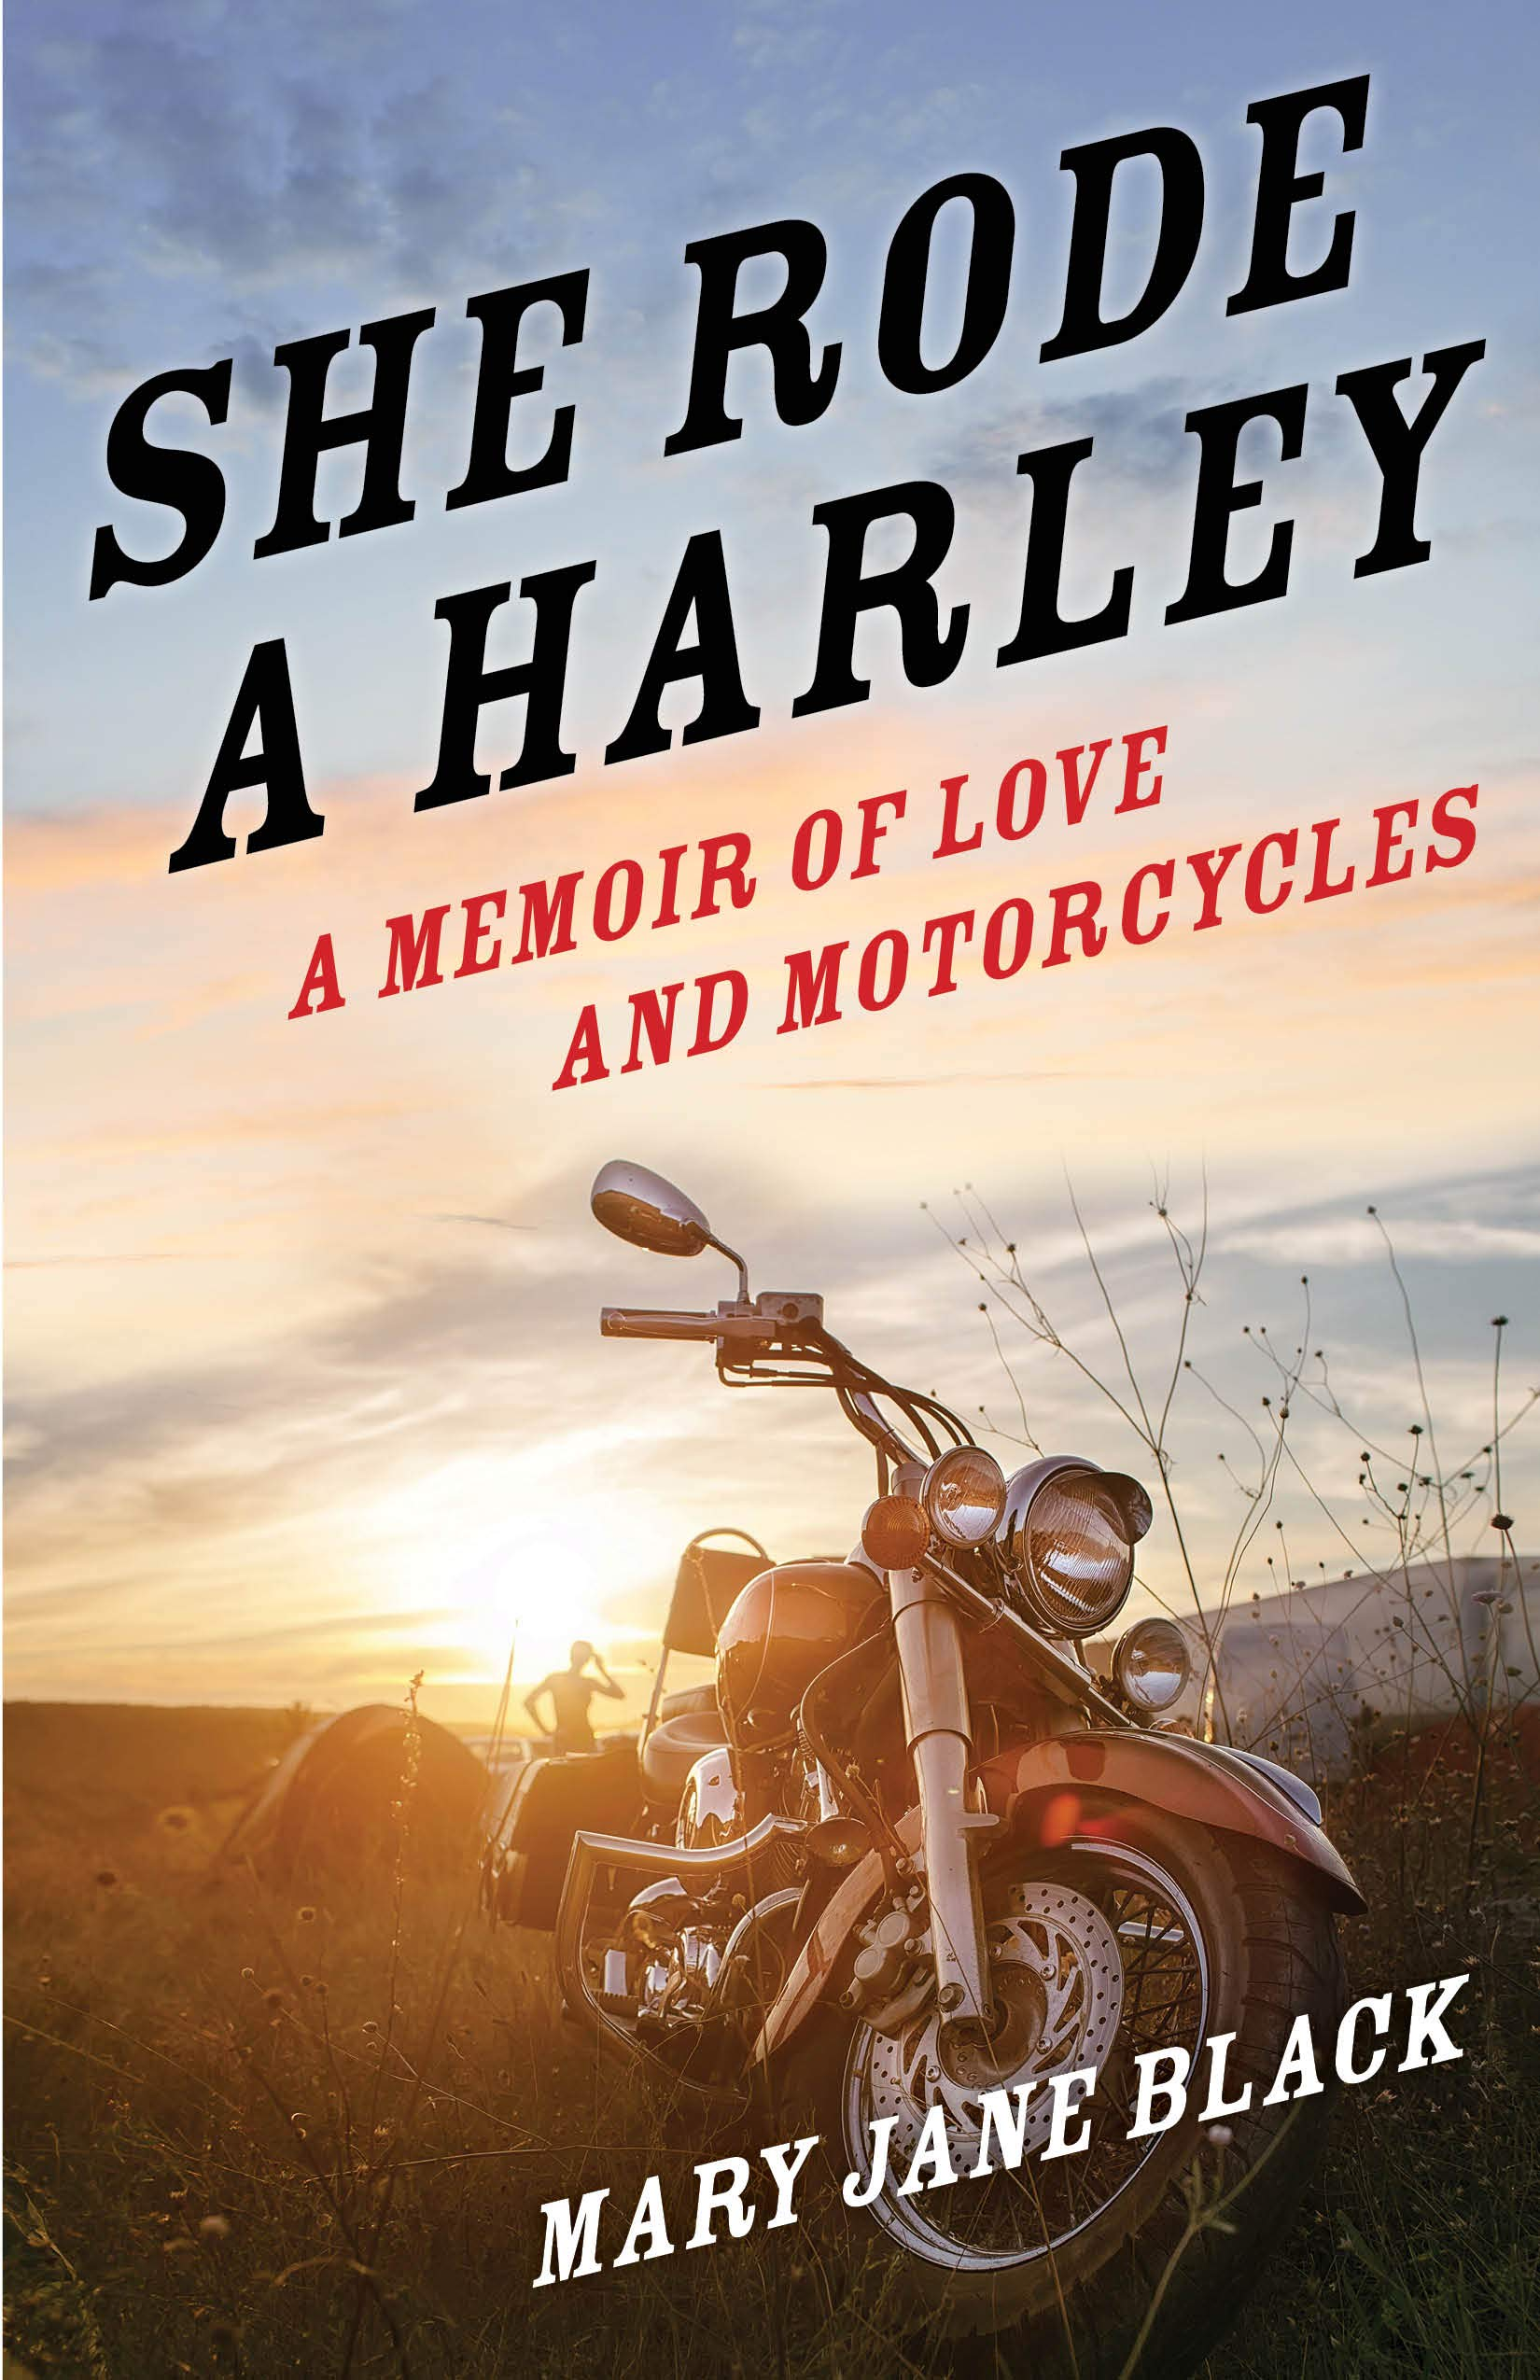 She Rode a Harley: A Memoir of Love and Motorcycles: Rider's Library Review